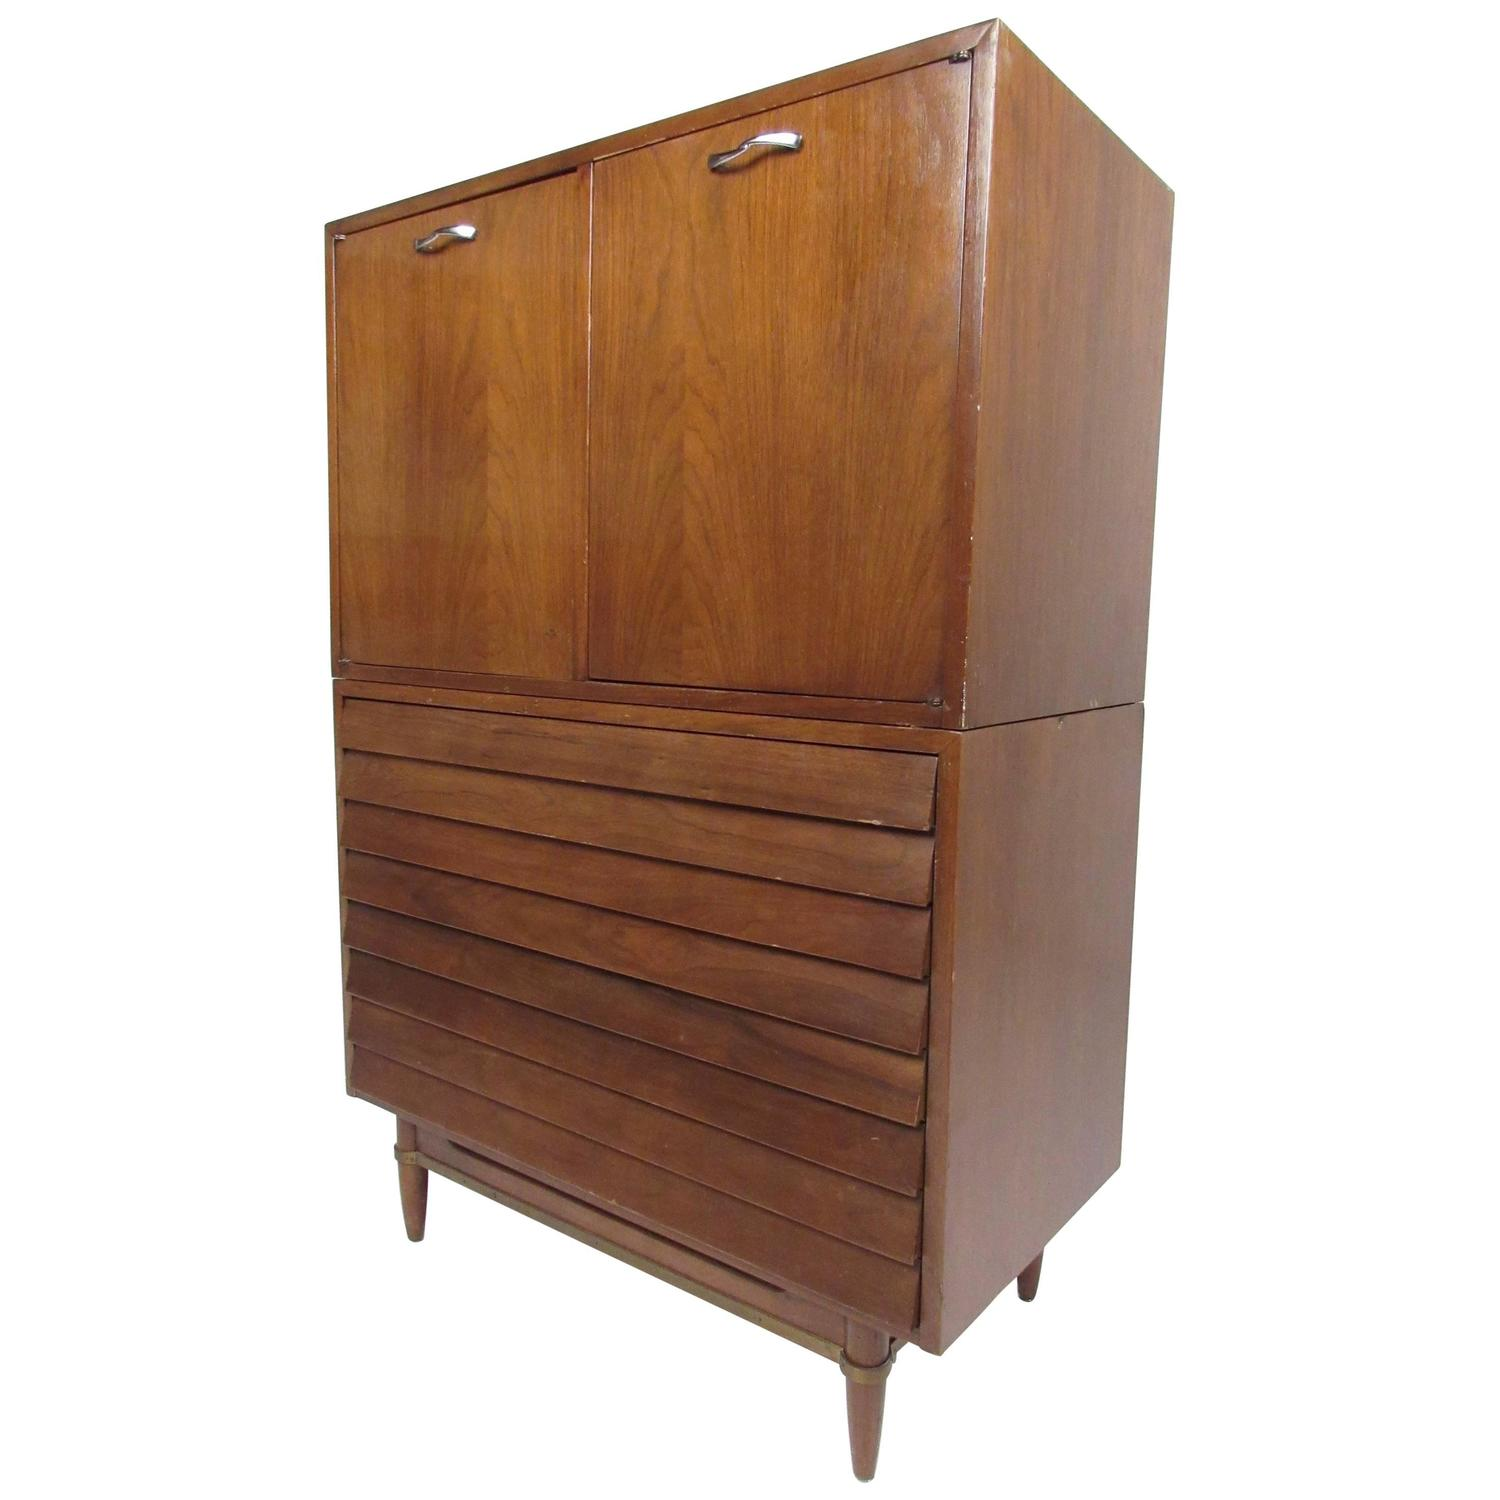 American Of Martinsville Bedroom Furniture American Of Martinsville Furniture Dressers Nightstands More